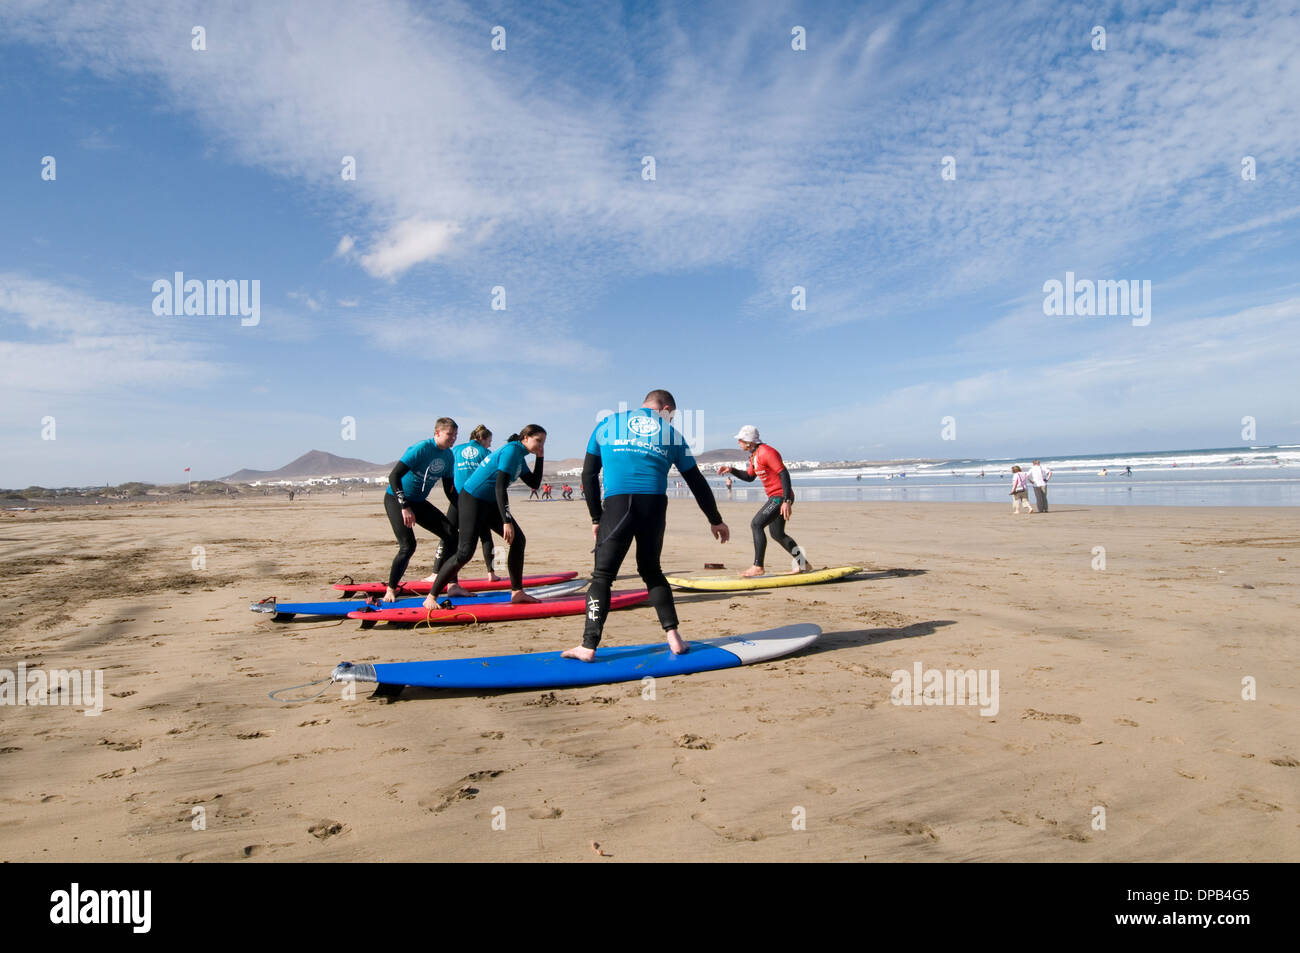 surfing lesson lessons learning to stand up on surf board boards surfboards beach playa famara lanzarote beach beaches canary is - Stock Image